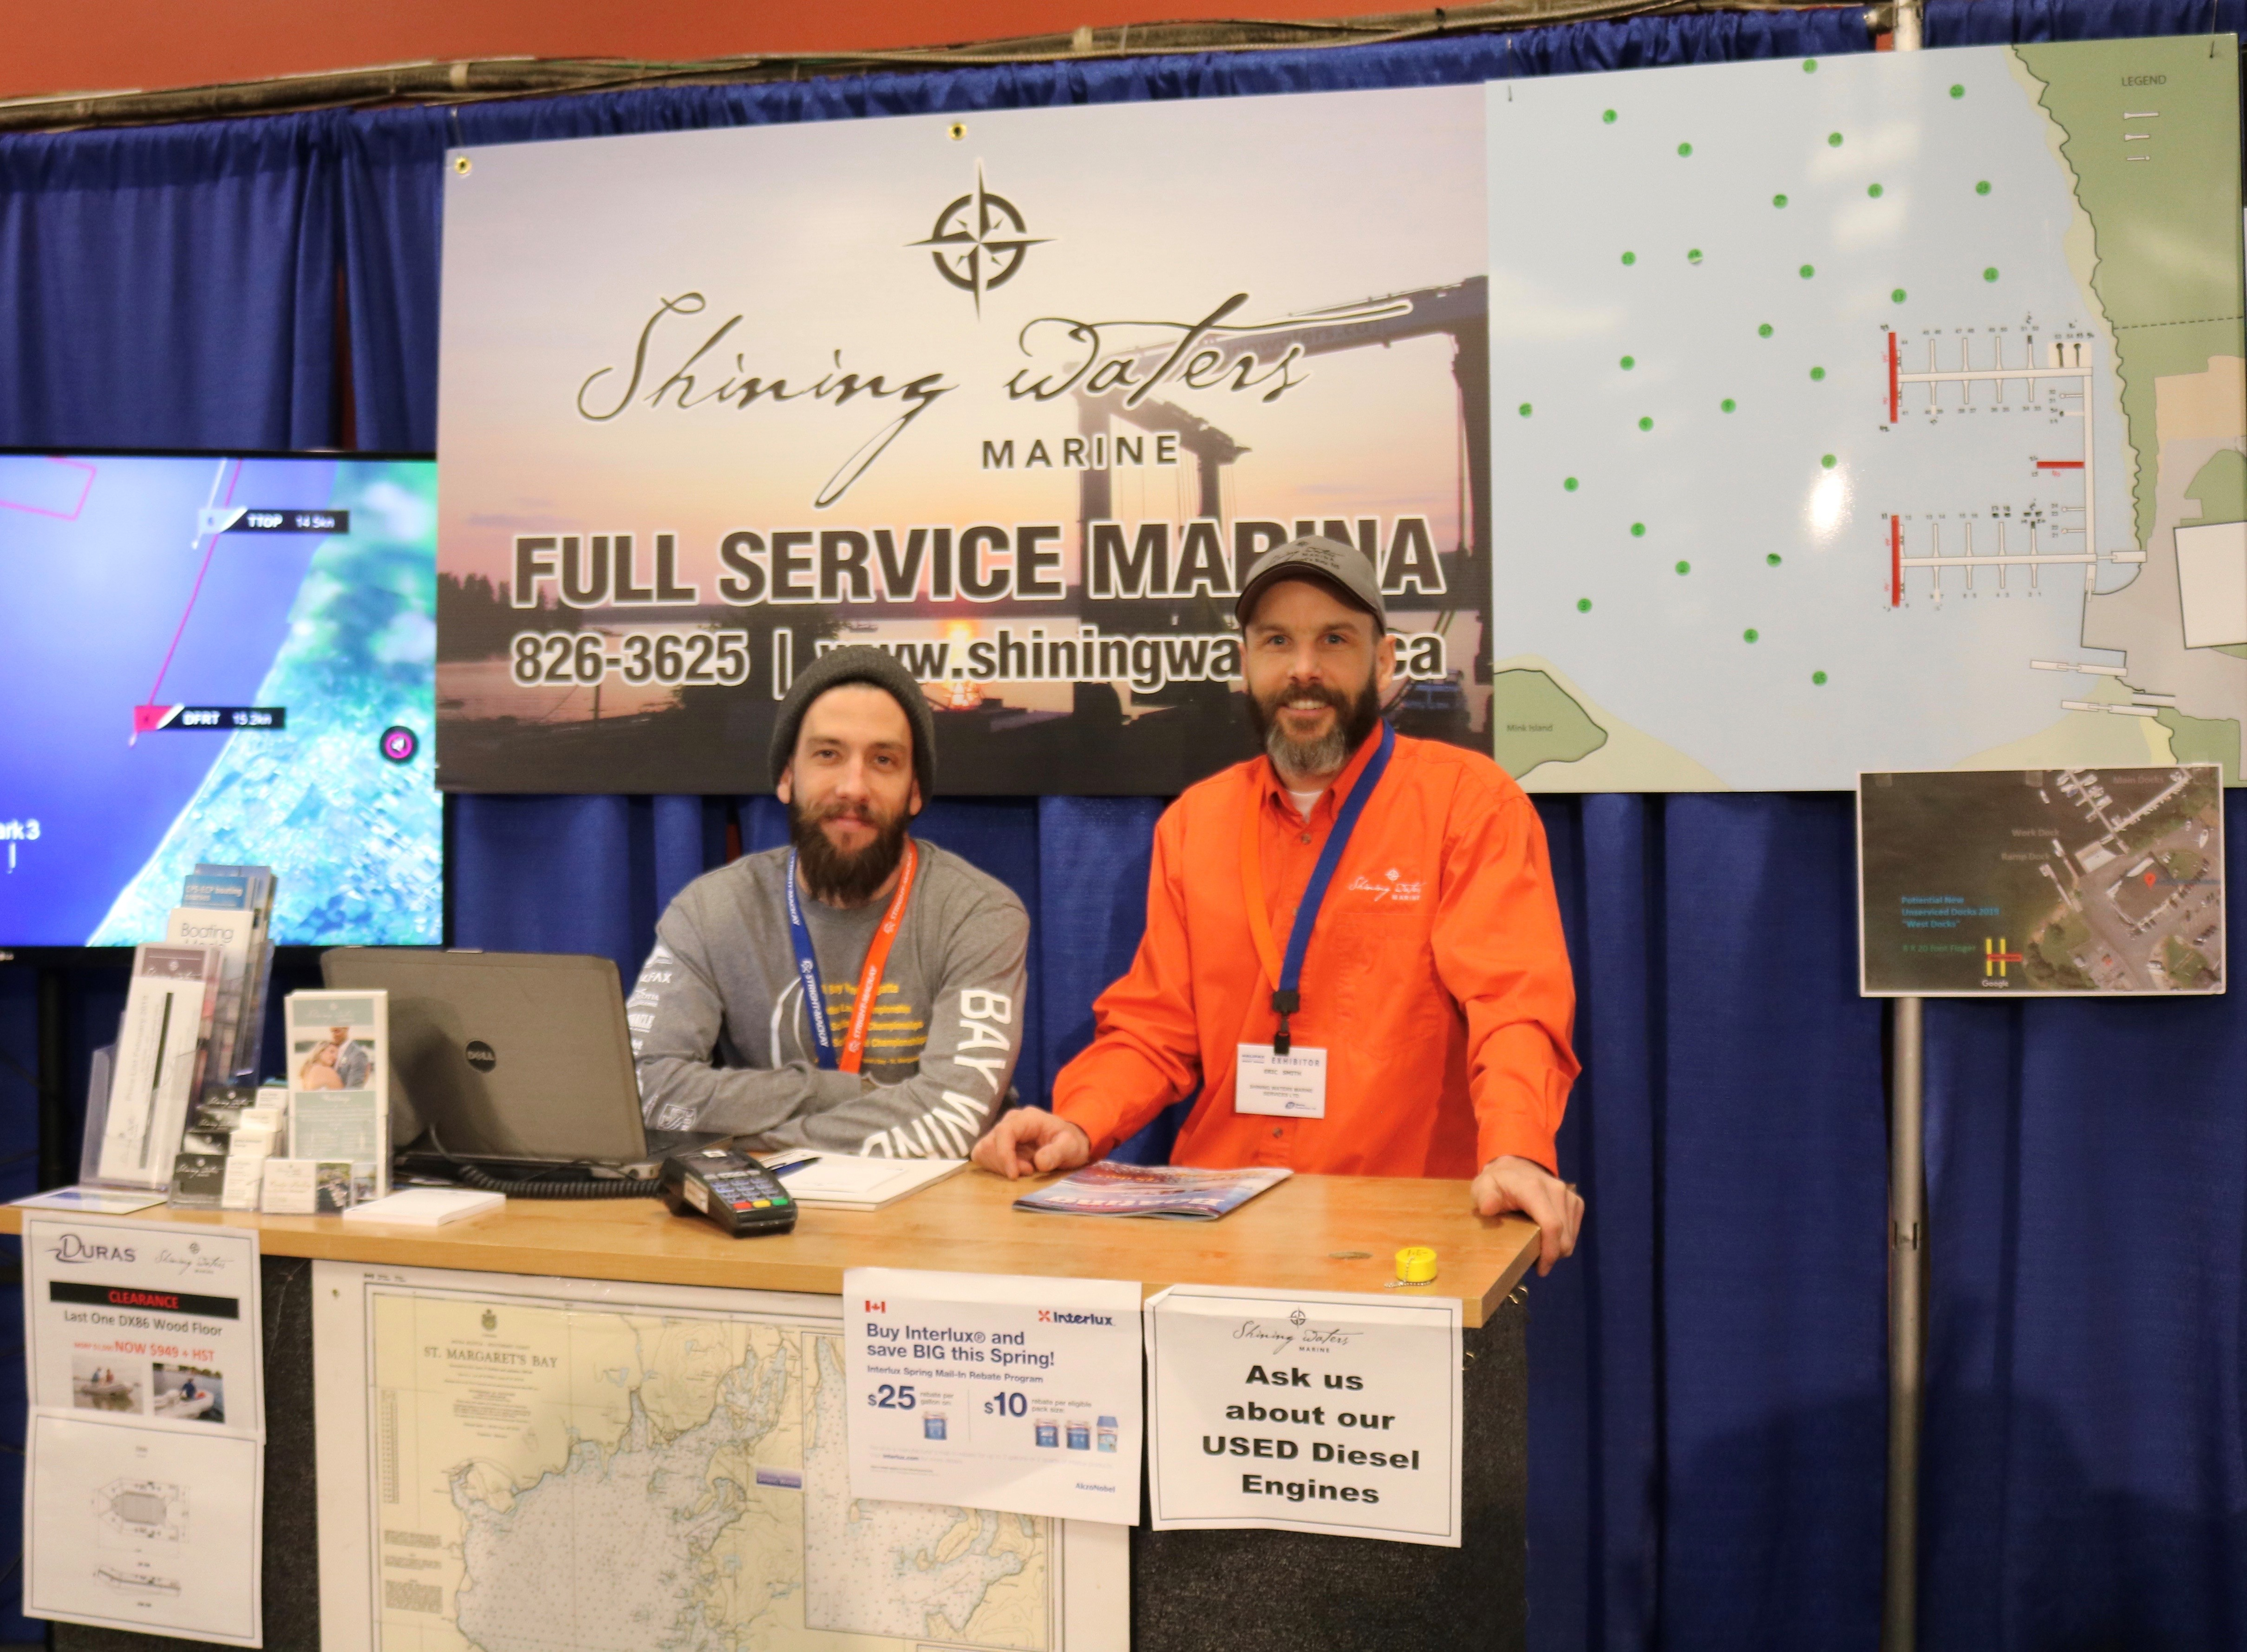 Shining Waters Marine booth